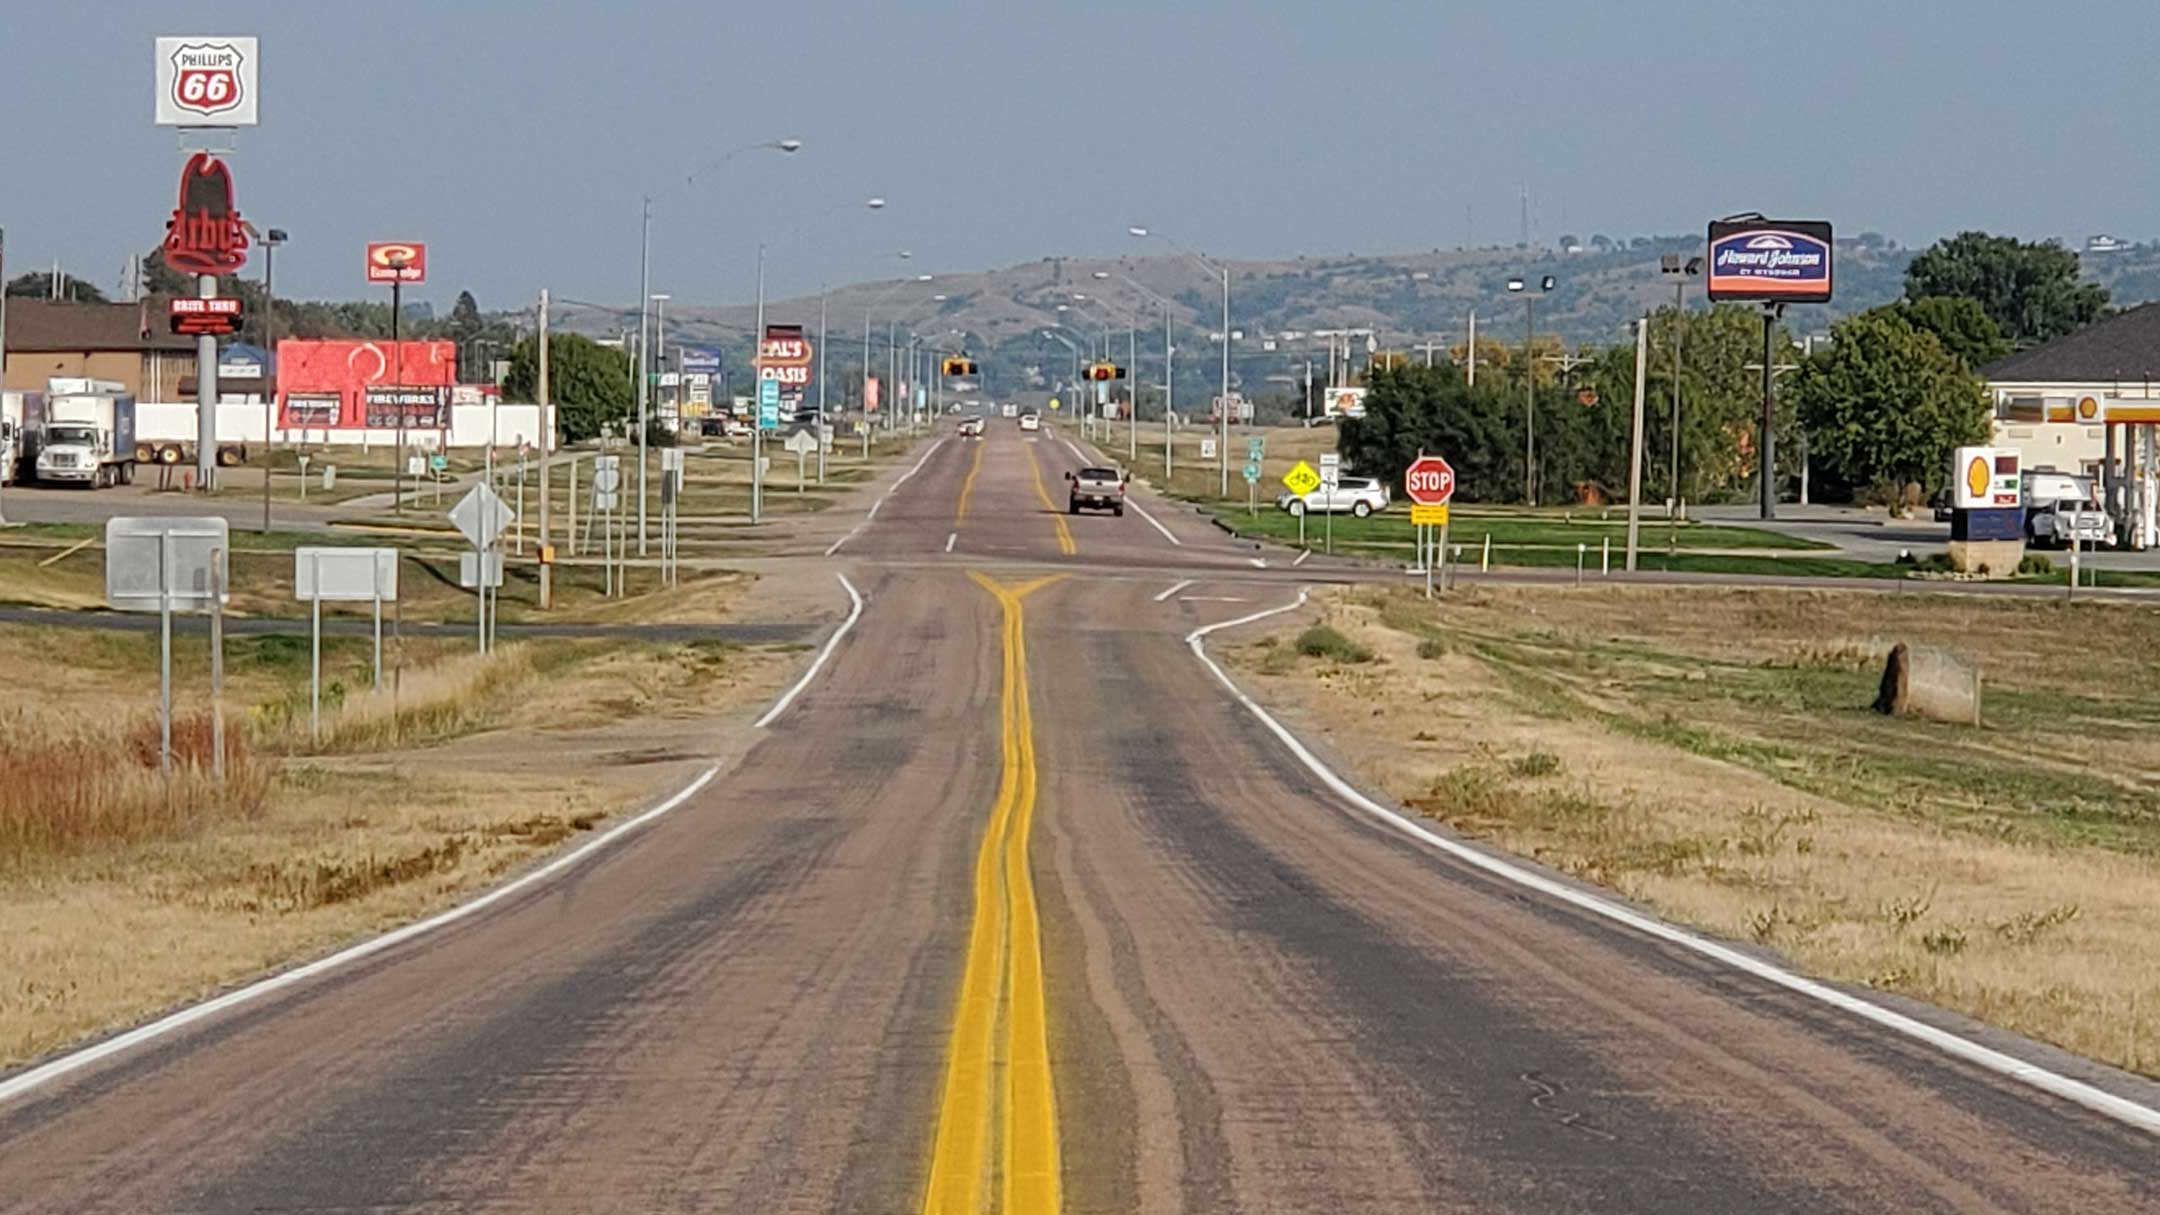 Highway in Oacoma South Dakota